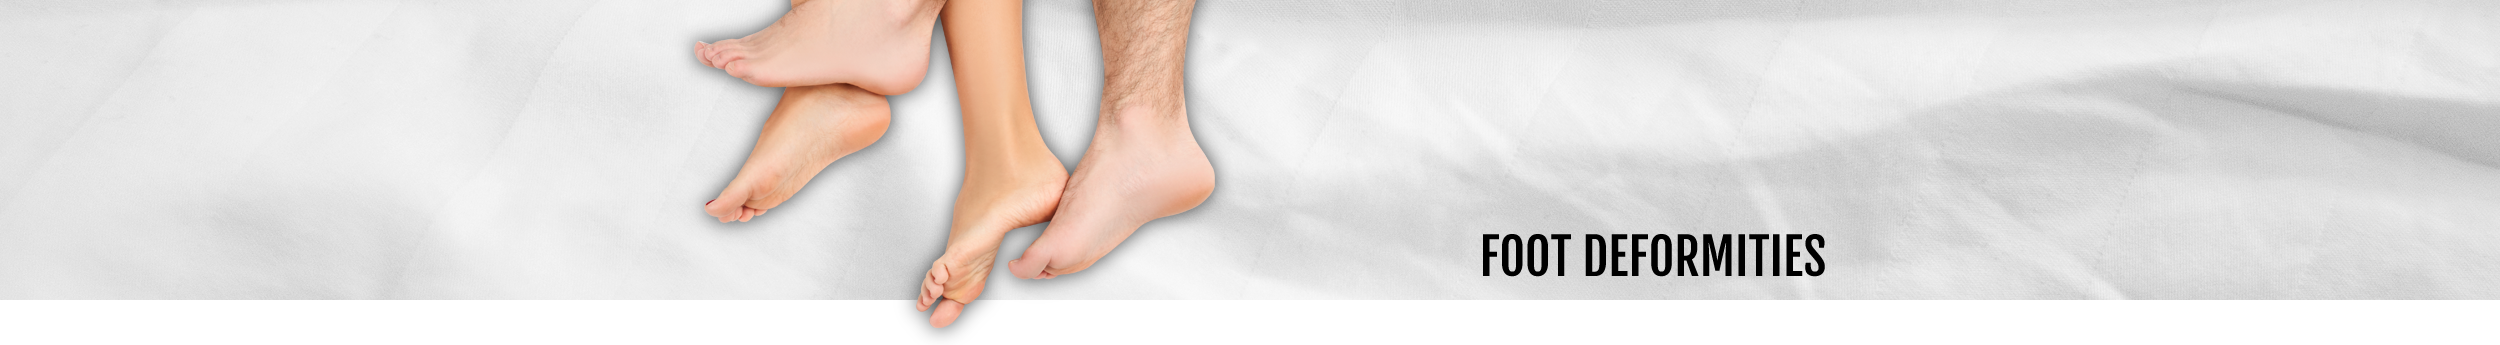 Foot Deformities header at Walk IN Foot Clinic in central London